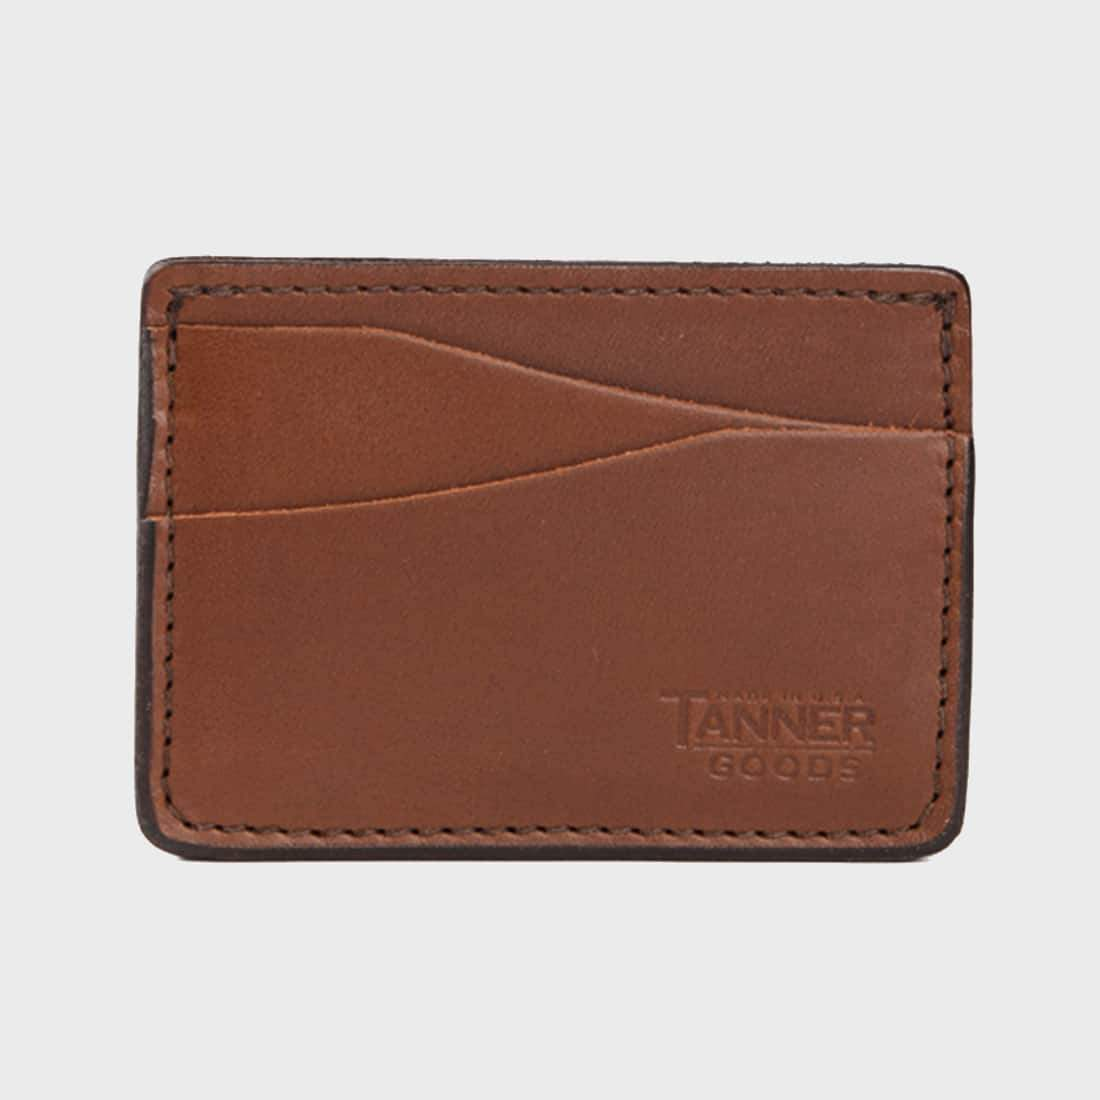 Tanner Goods Journeyman Wallet Caramel